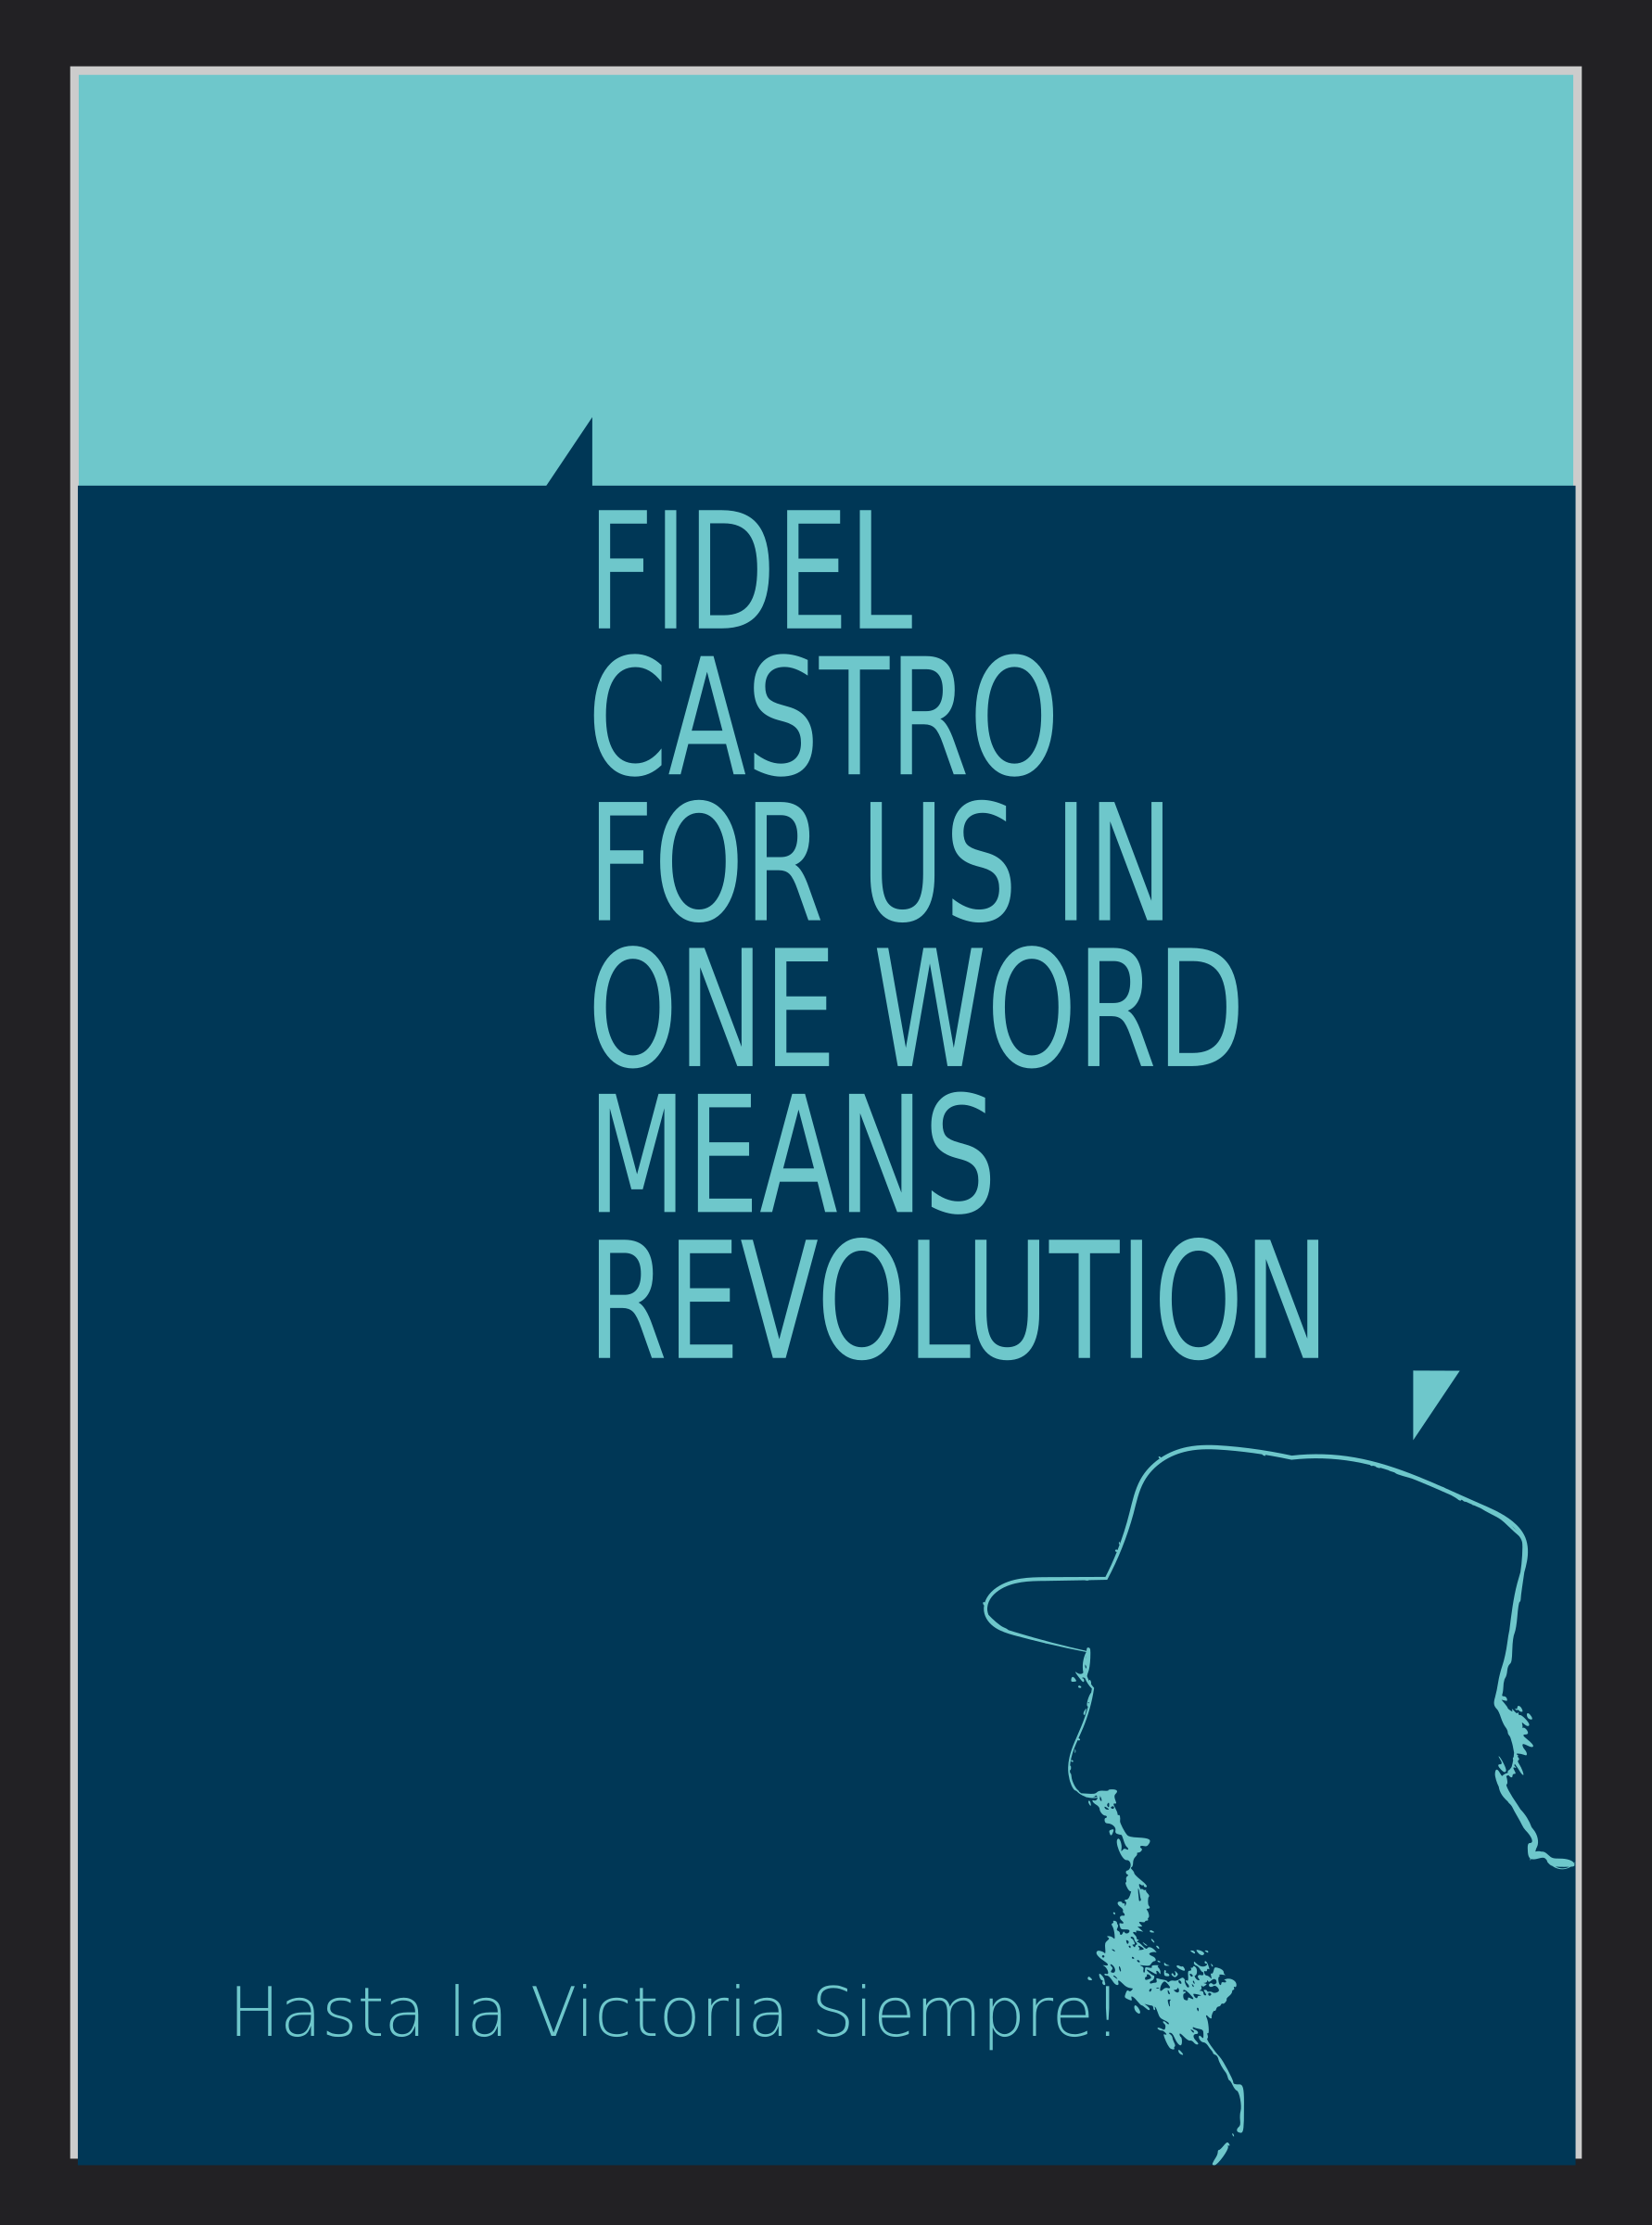 FIDEL CASTRO FOR US IN ONE WORD MEANS REVOLUTION by suthir